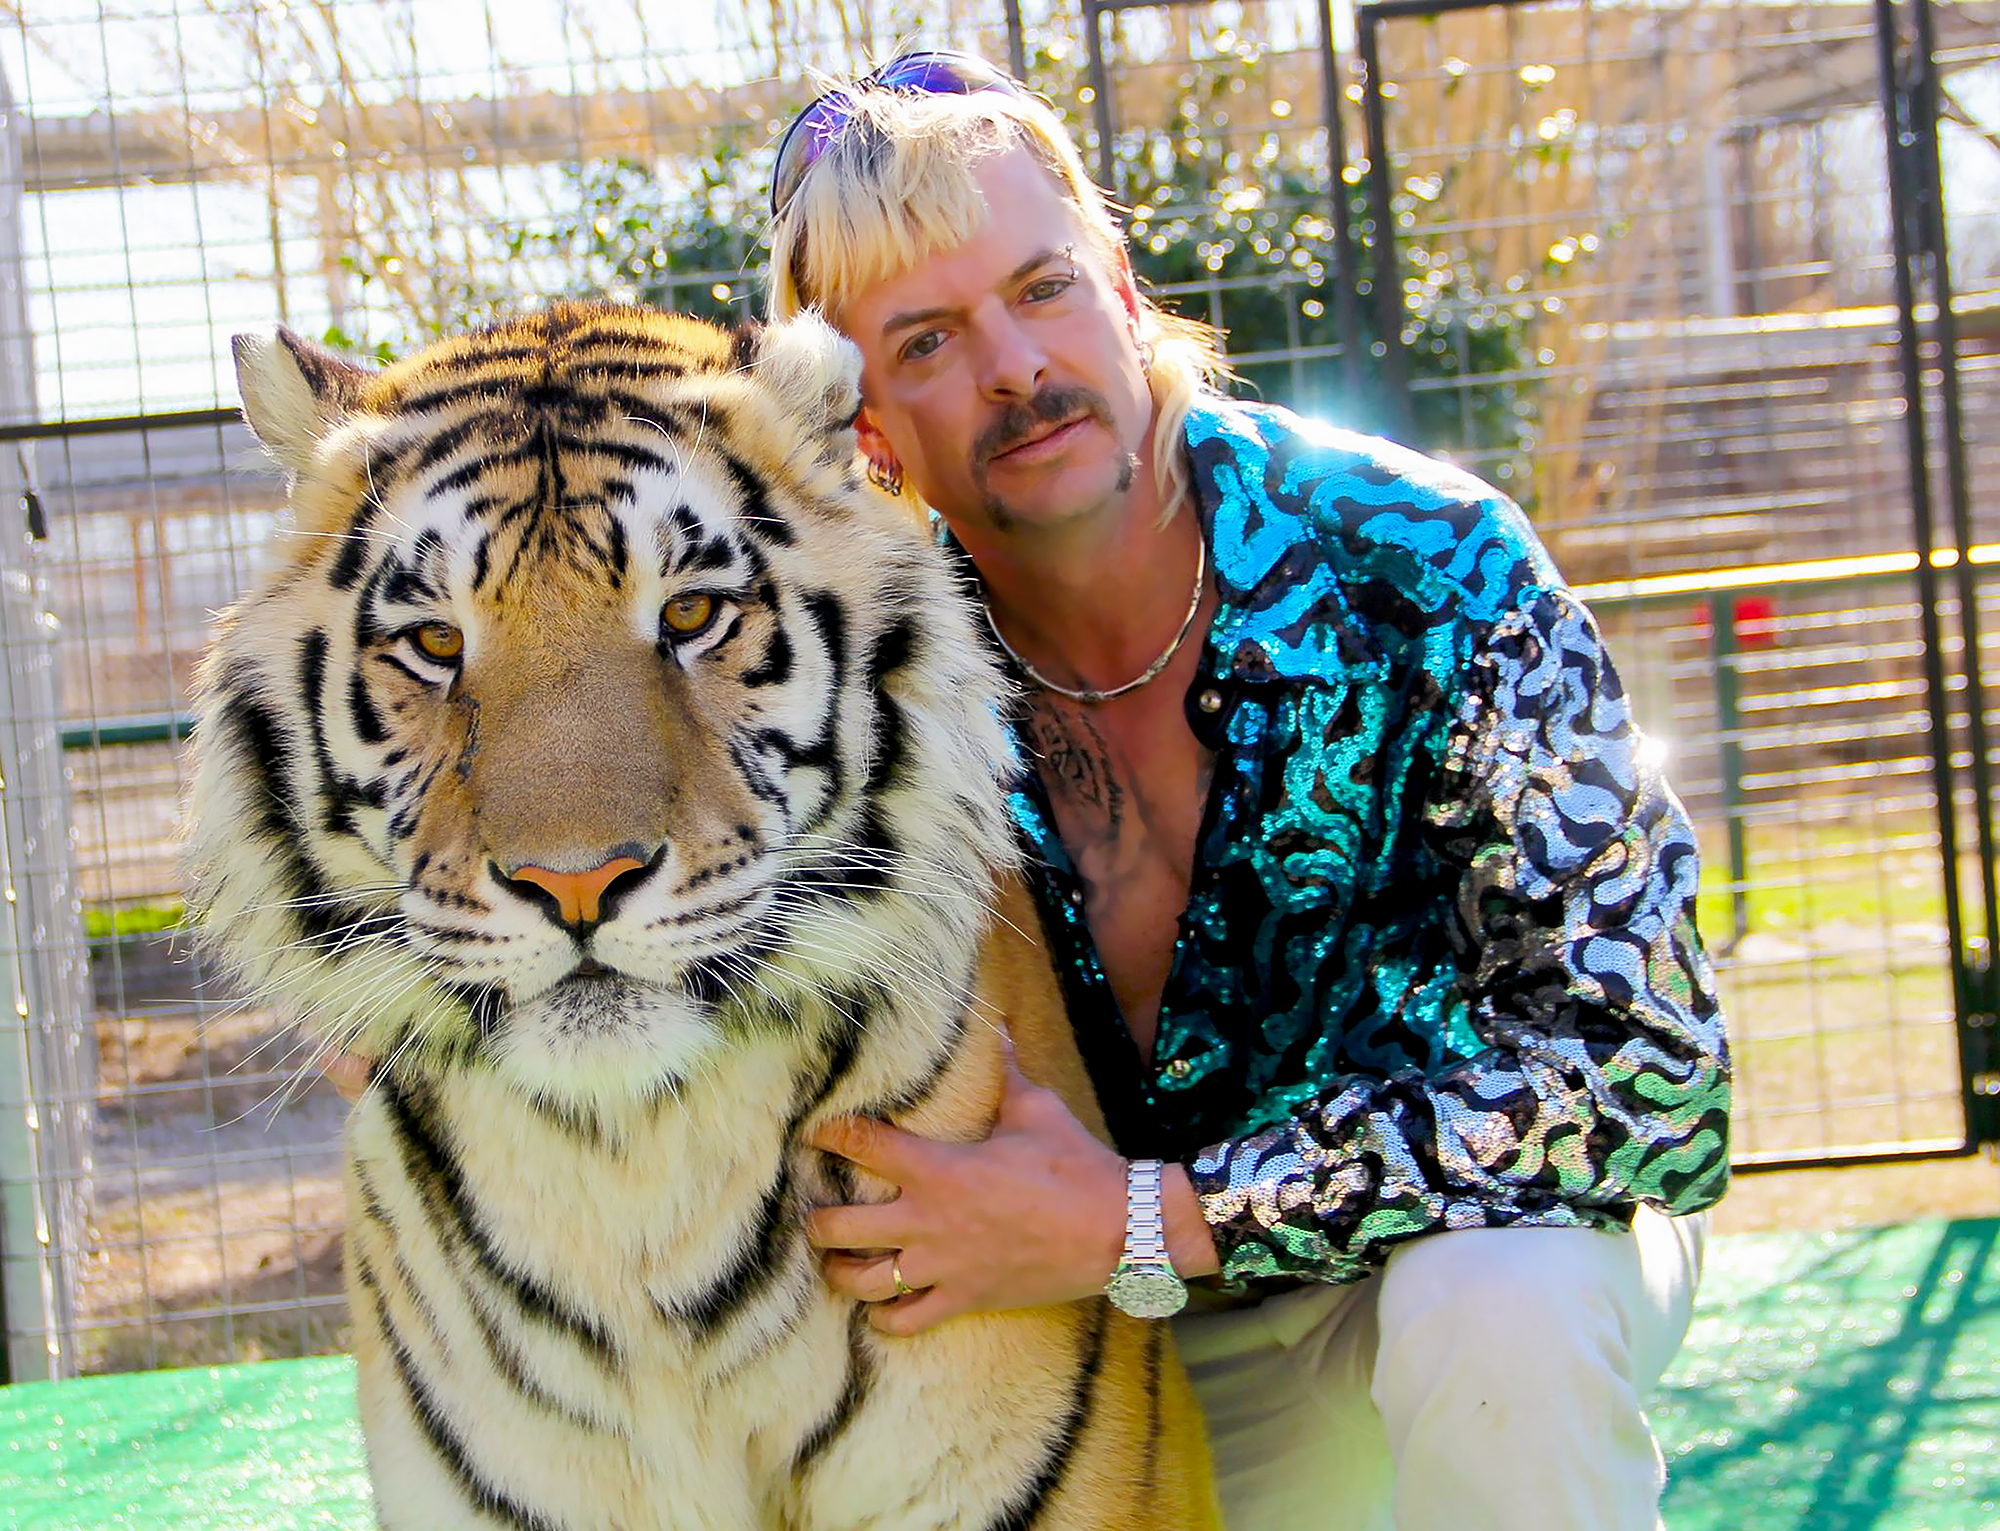 Nicholas Cage to Play Tiger King Joe Exotic 2